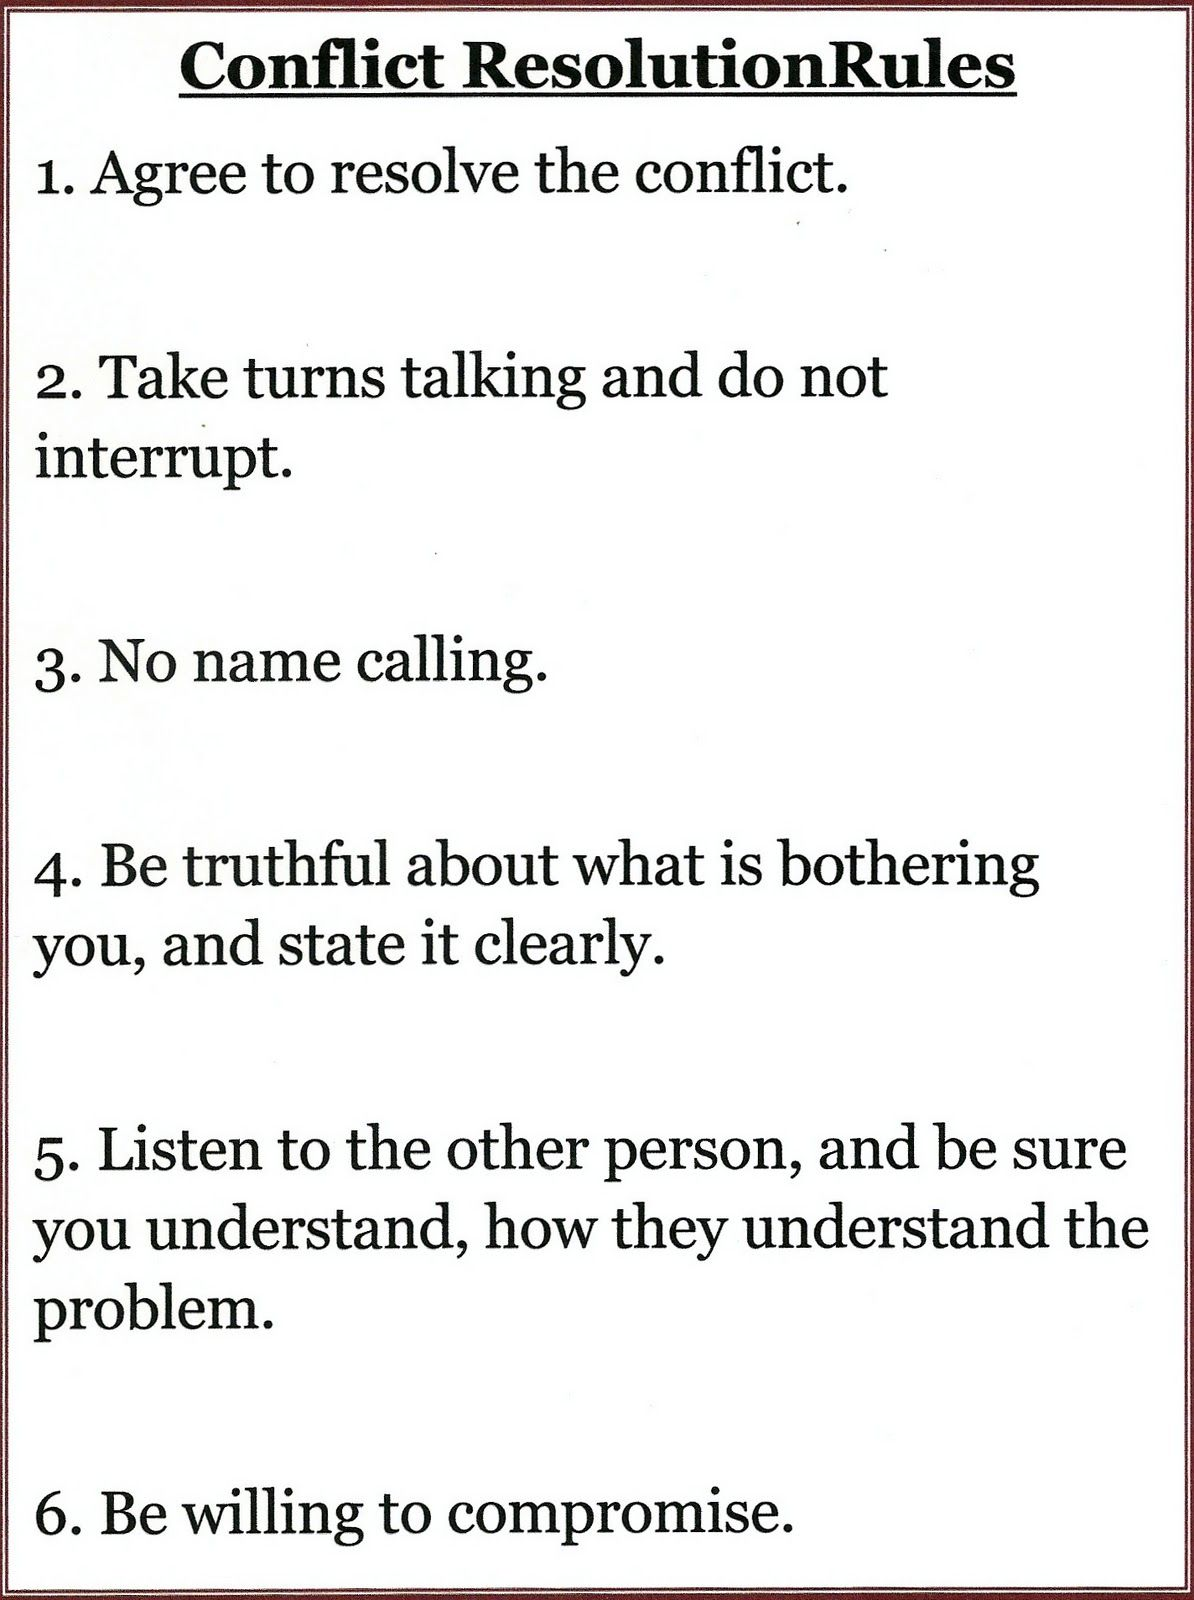 Conflict Resolution Rules